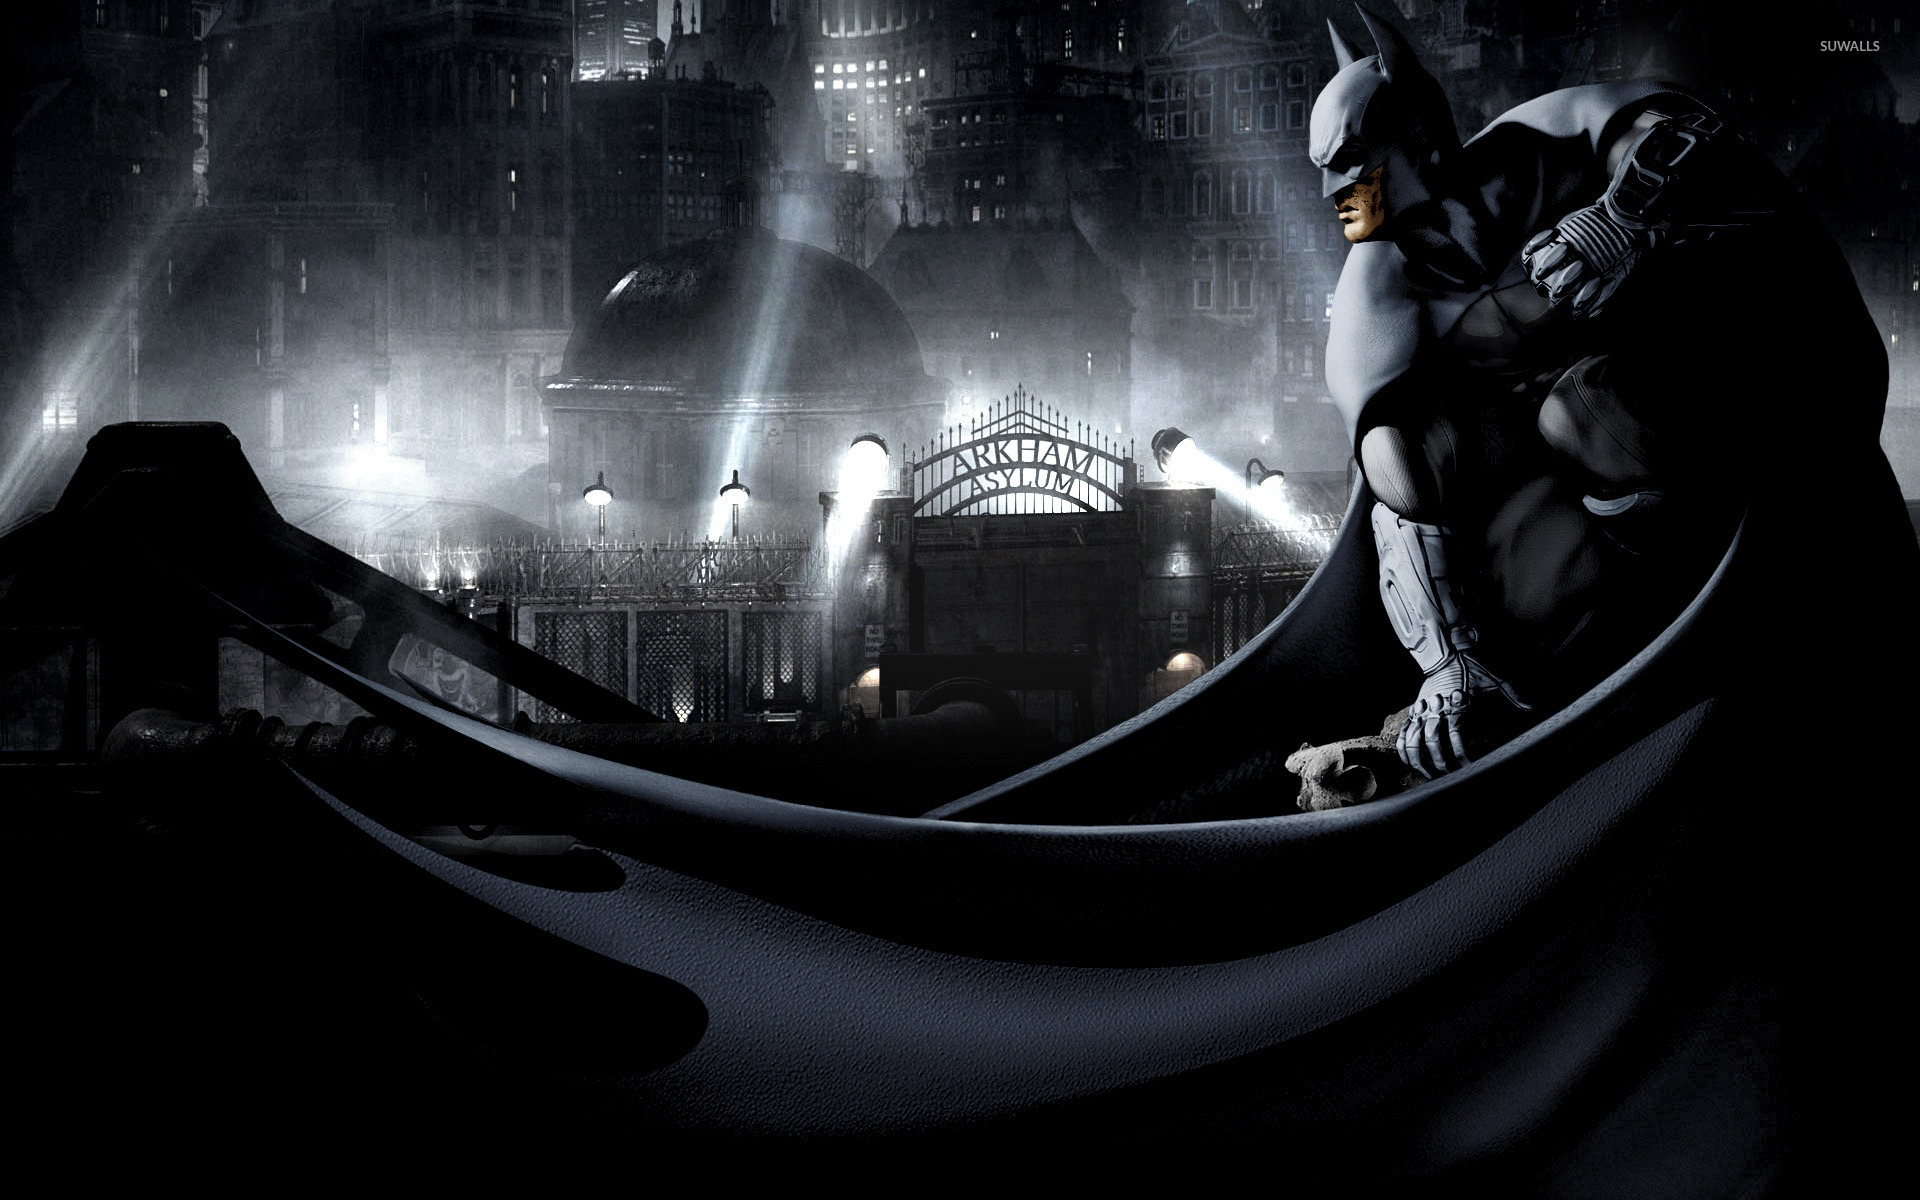 Murugan 3d Wallpaper Batman Arkham City 7 Wallpaper Game Wallpapers 44916